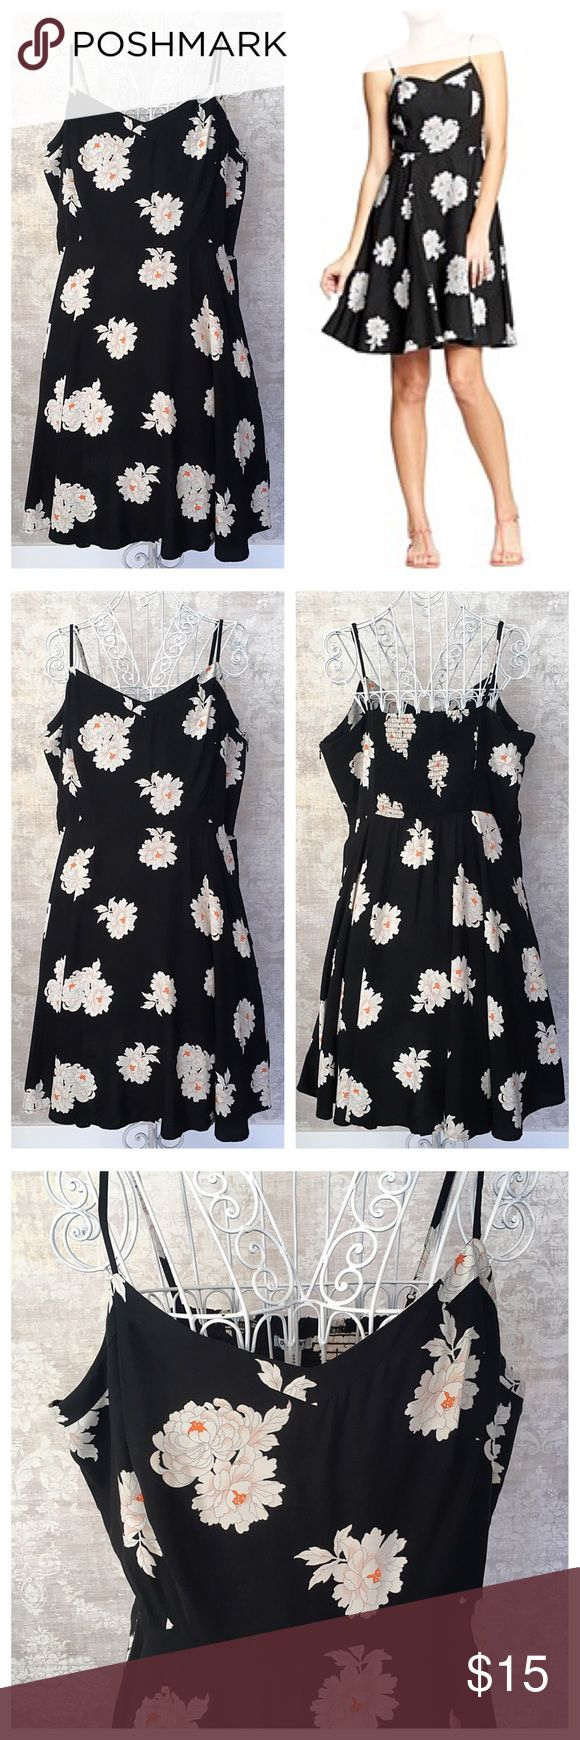 "Old Navy Cami Dress Old Navy black floral print cami dress, size XXL Tall. Adjustable straps, elasticized back panel for a great fit. Side zip with hook-and-eye closure at the top. 23"" waist-to-hem. New without tags. Old Navy Dresses"